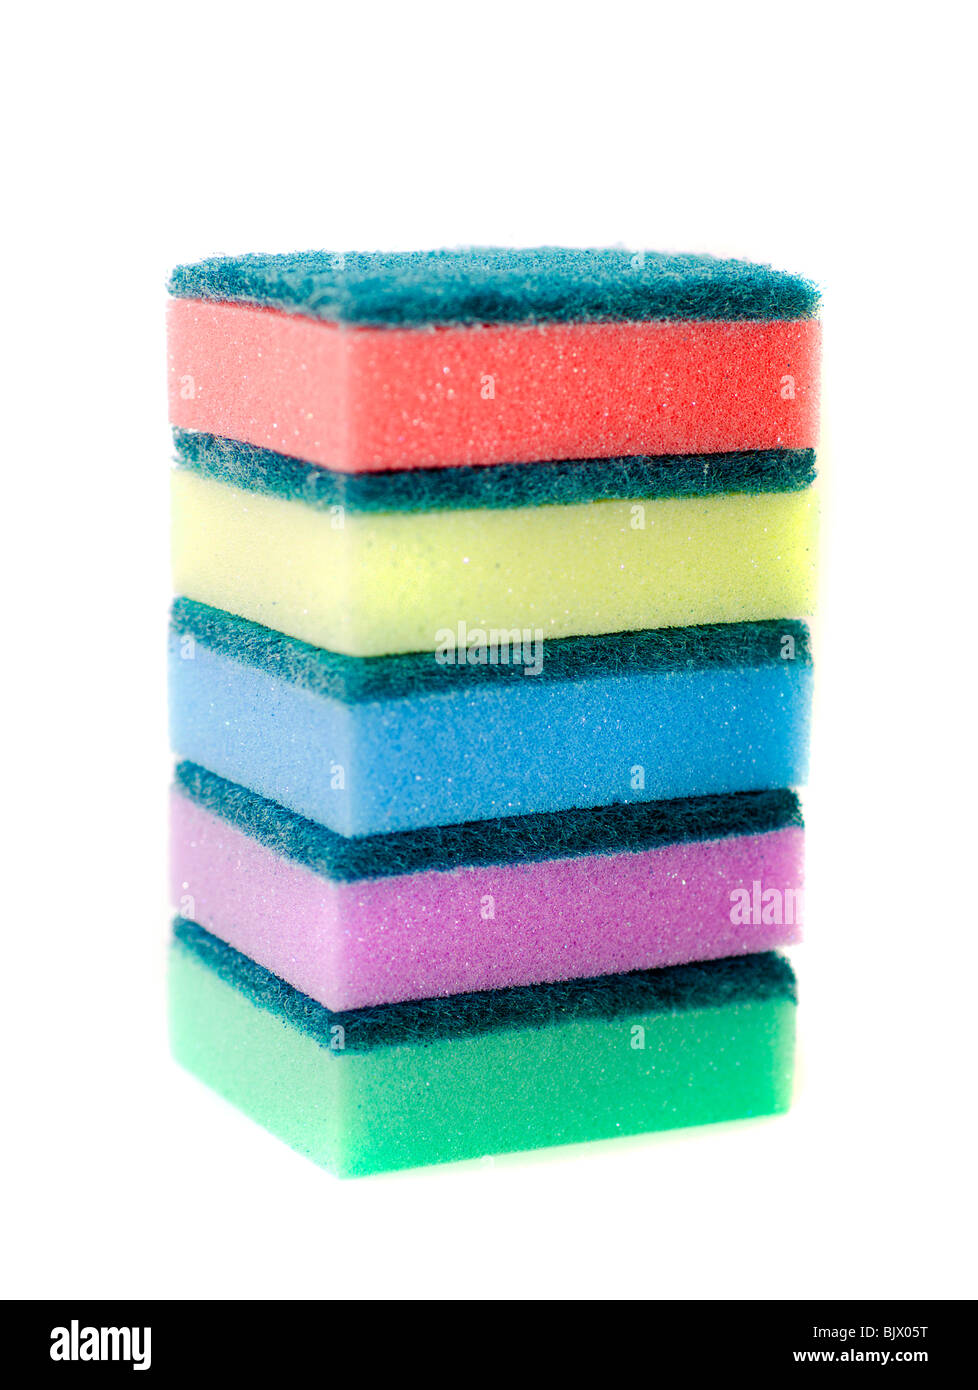 Sponges for utensils. Isolation on white - Stock Image